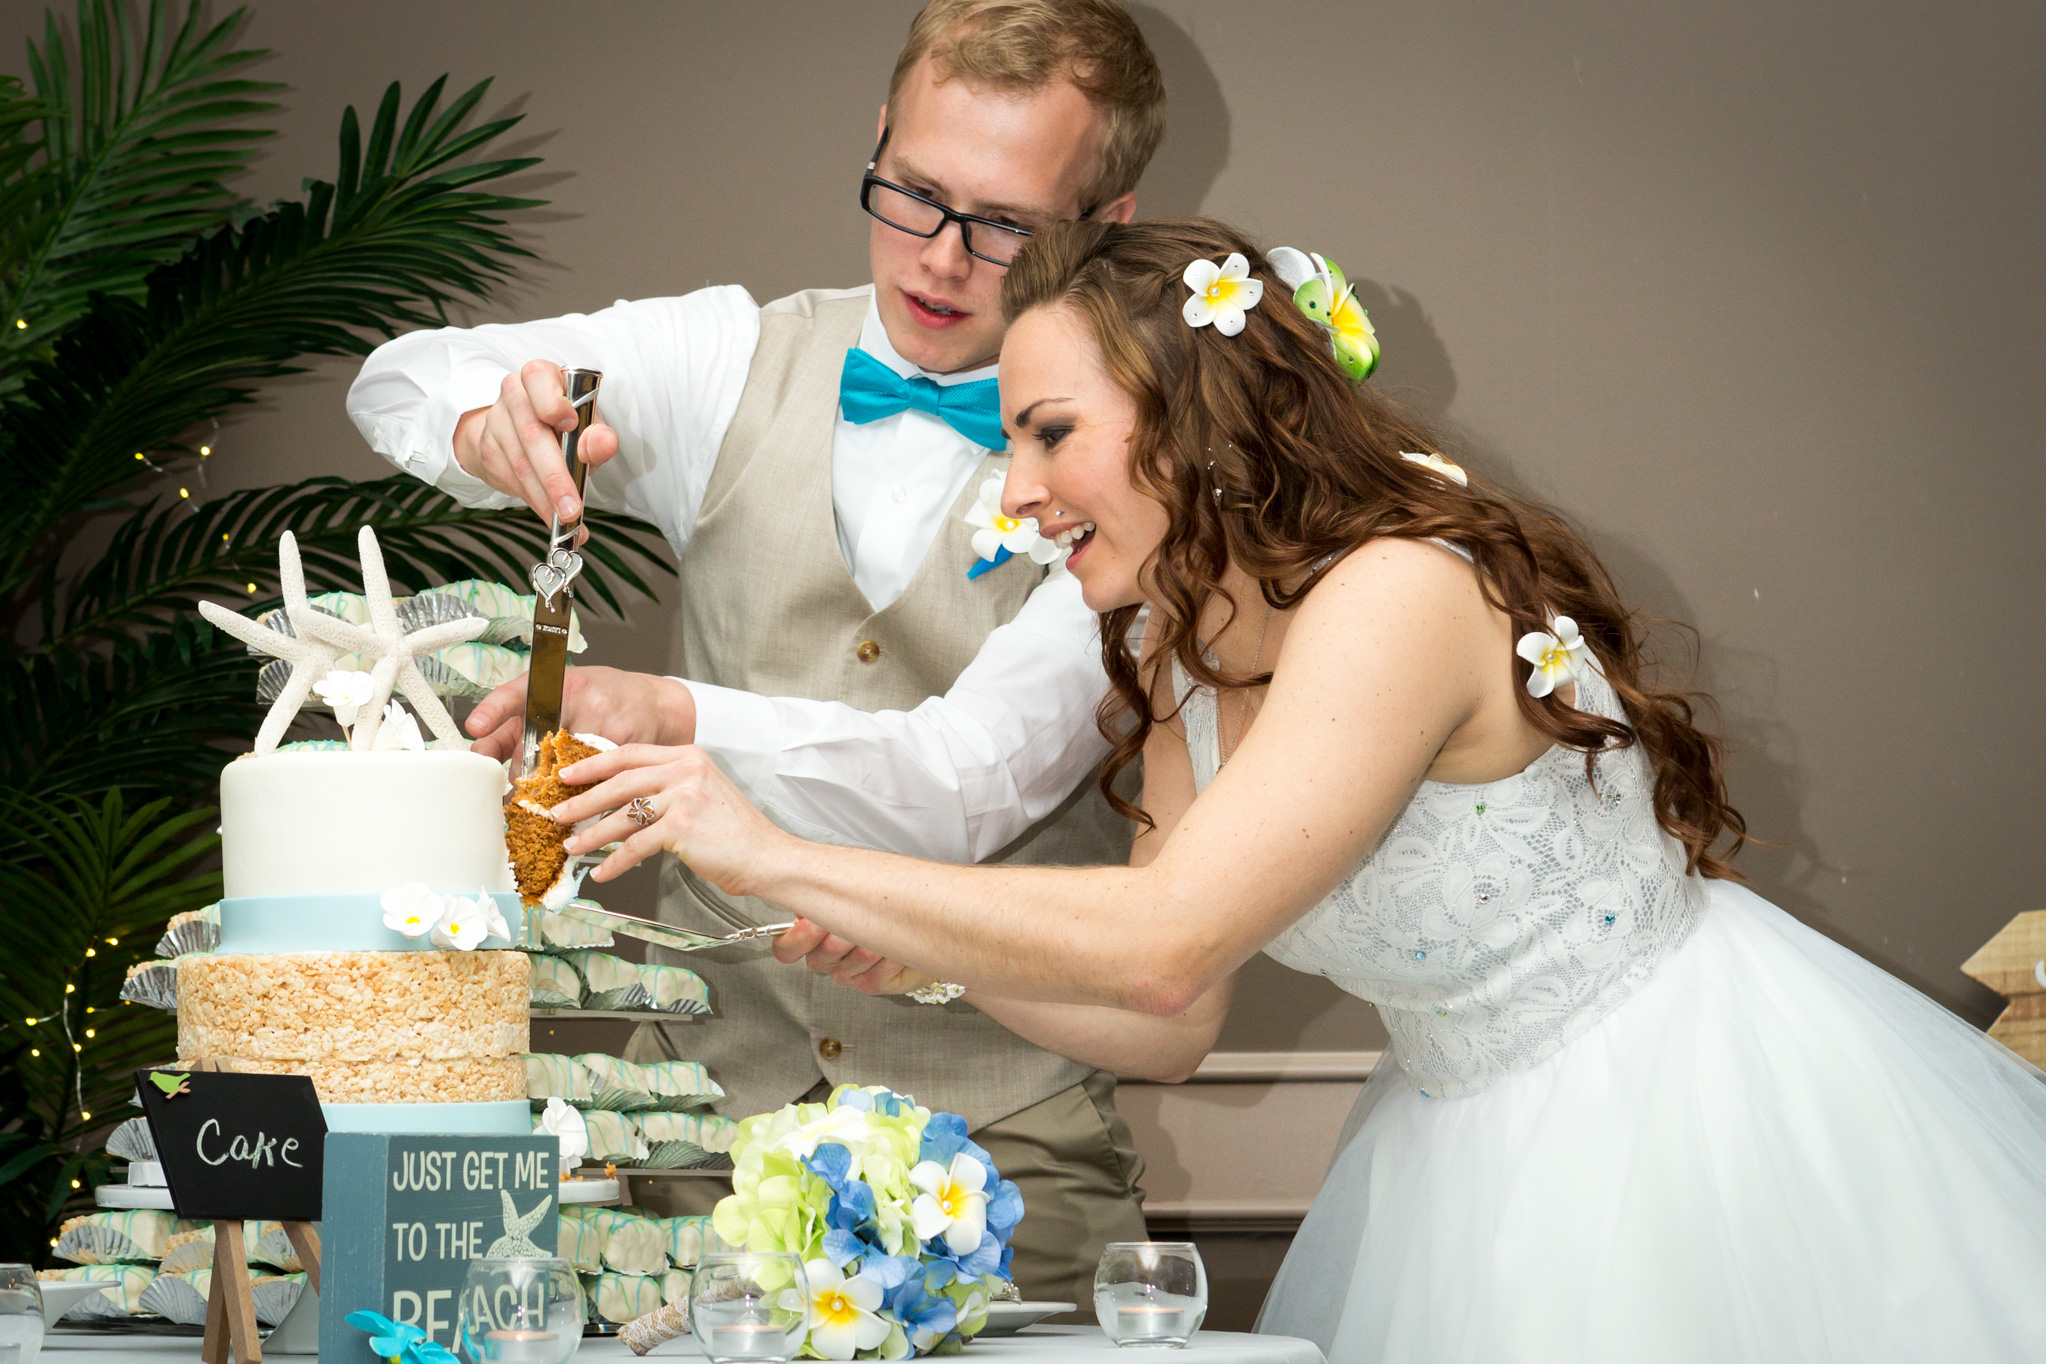 bride_groom_wedding_cake_3.jpg